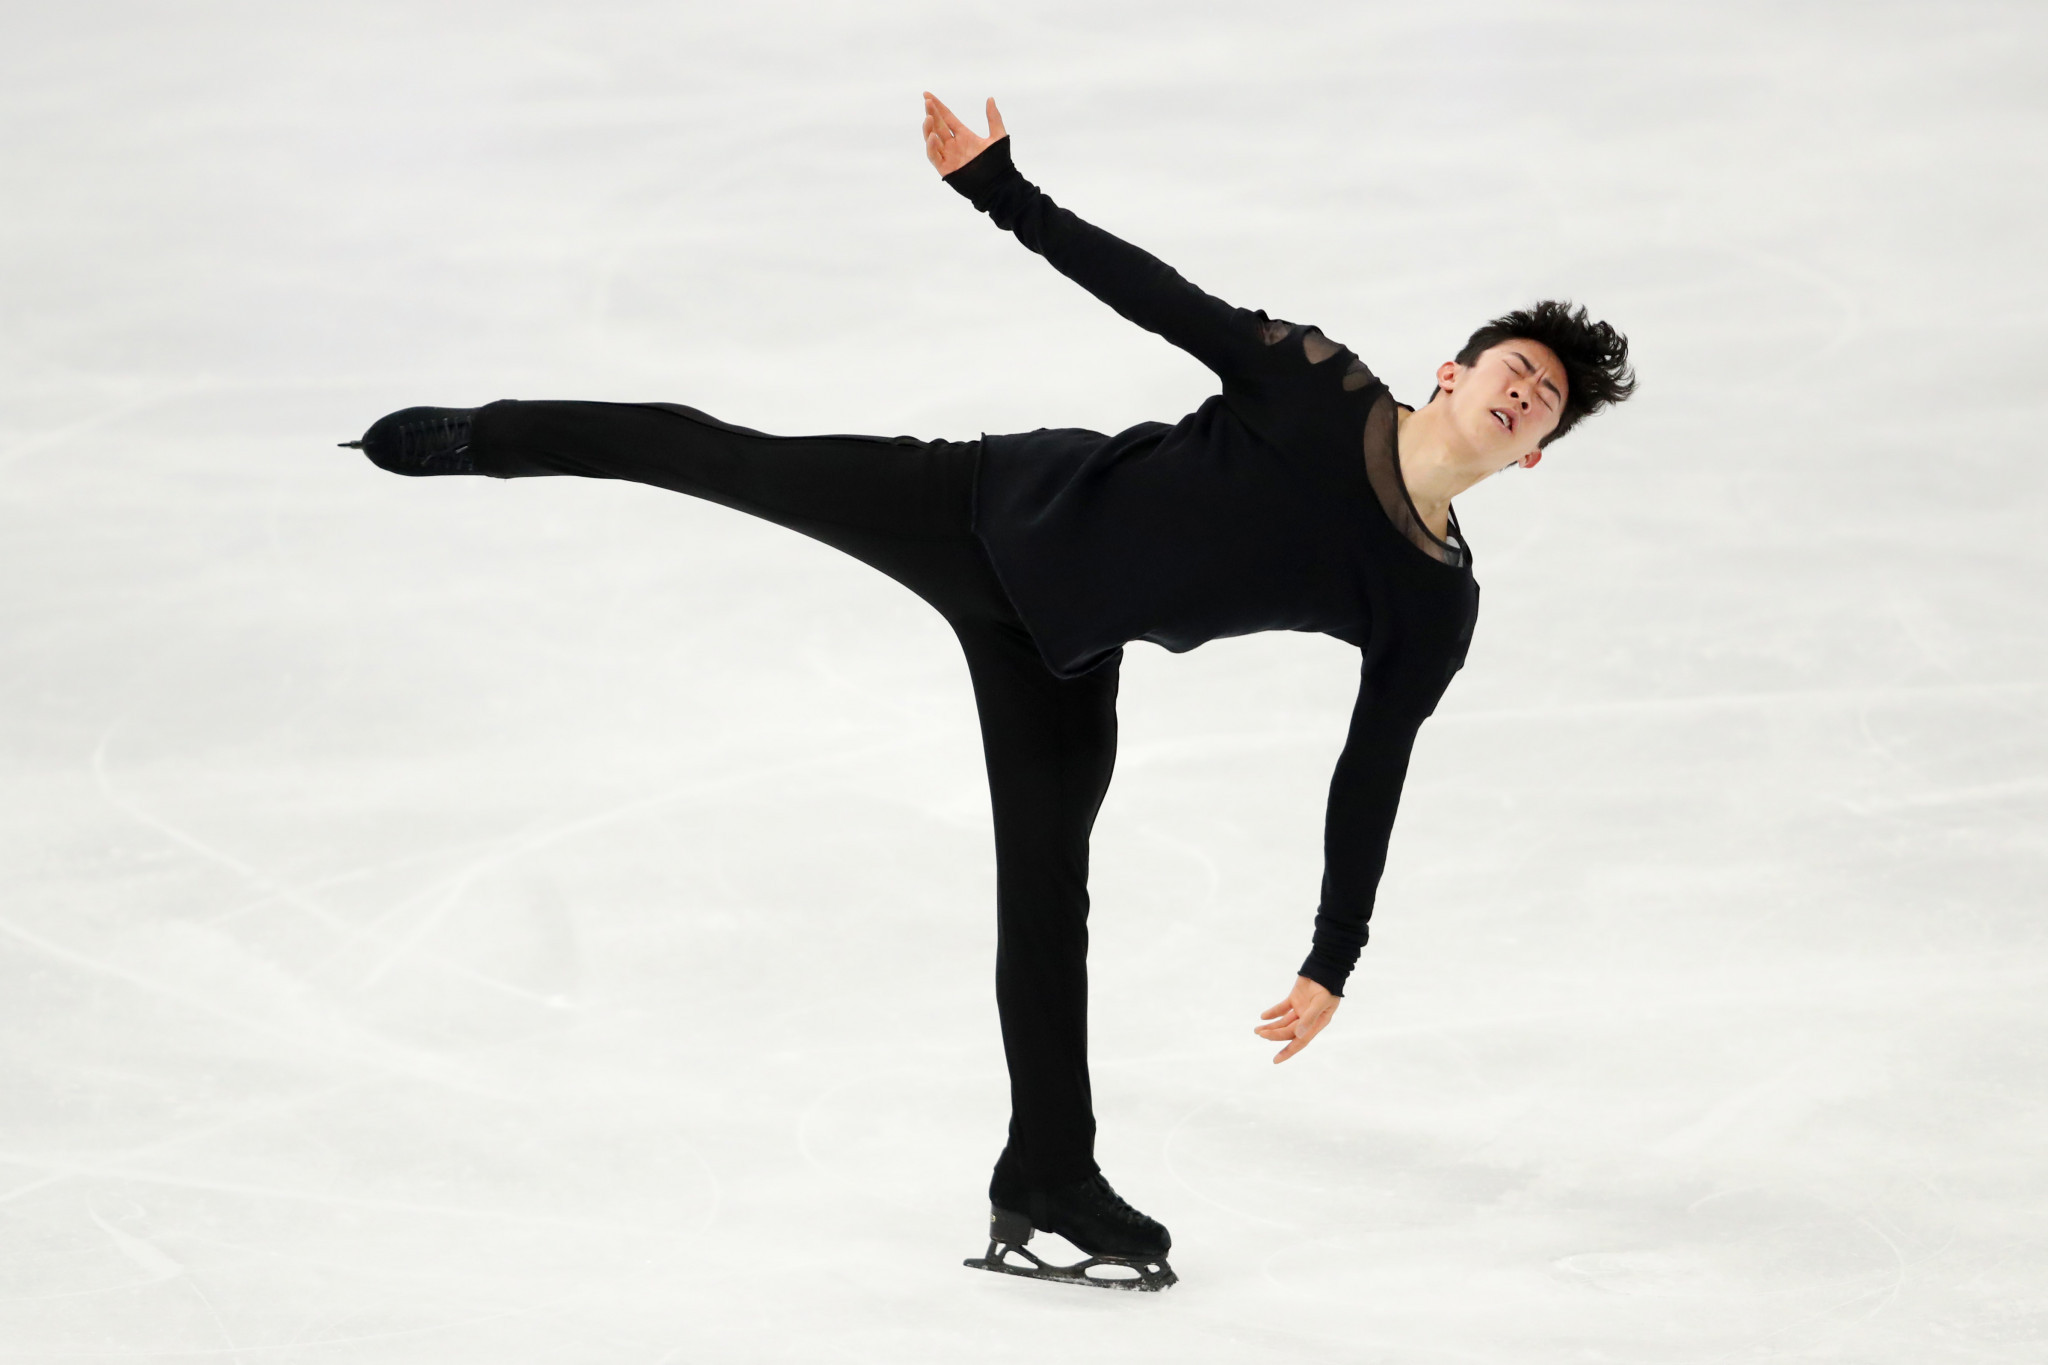 Reigning world champion Nathan Chen will look to help the United States retain their World Team Trophy crown ©Getty Images